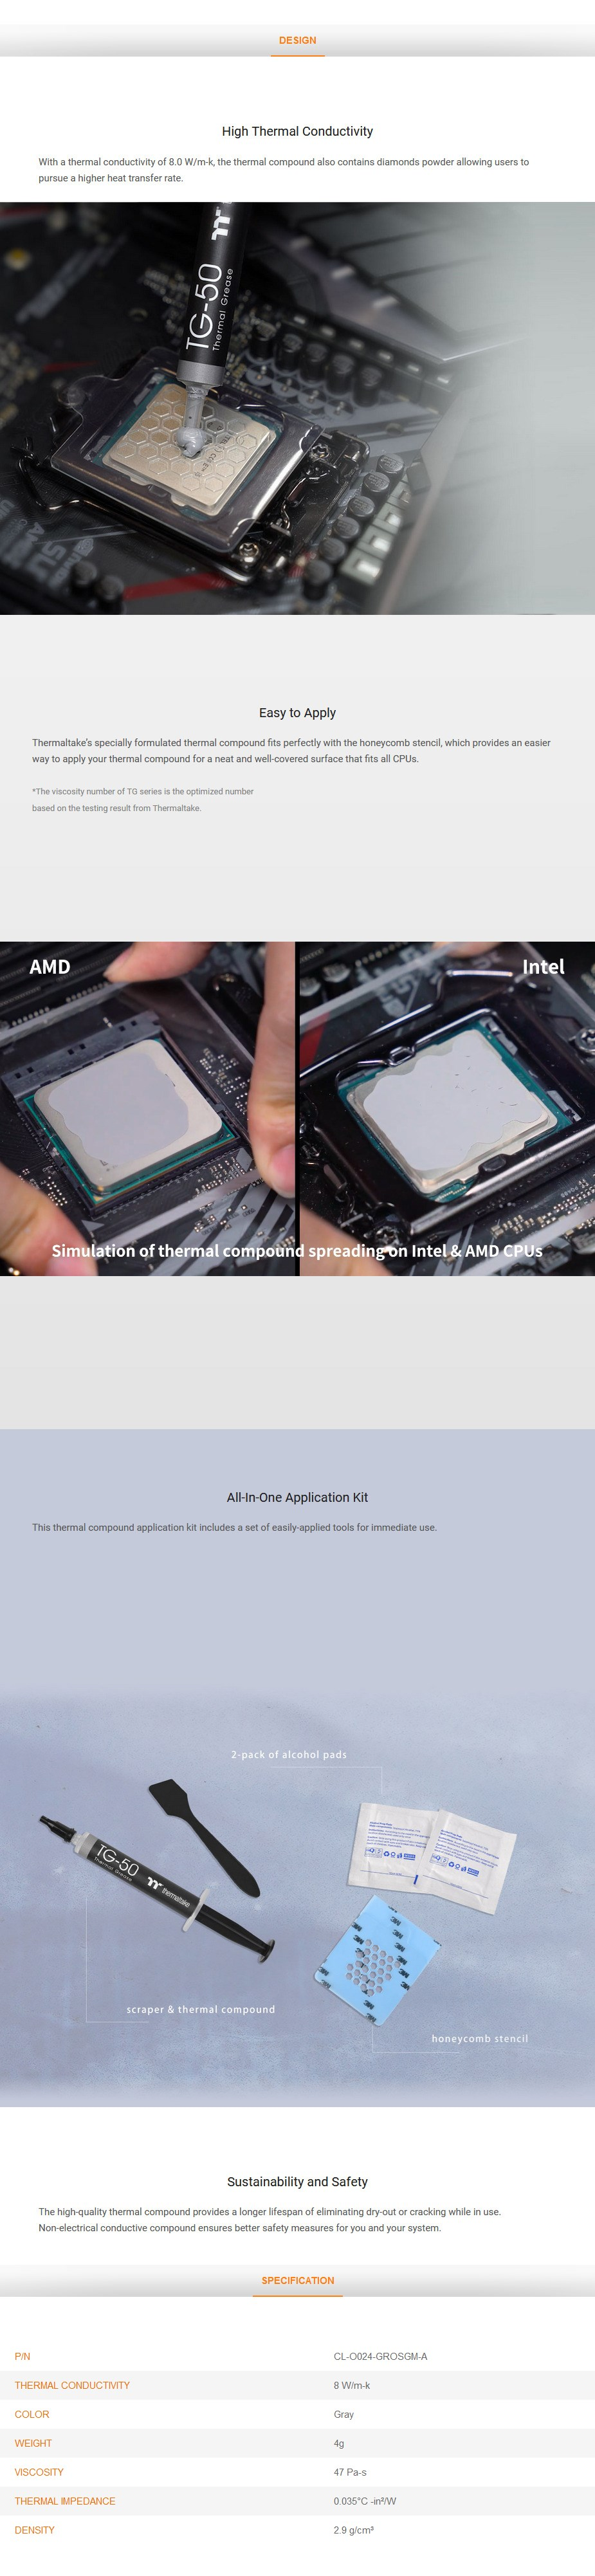 Thermaltake TG-50 Thermal Compound 4g - Desktop Overview 1